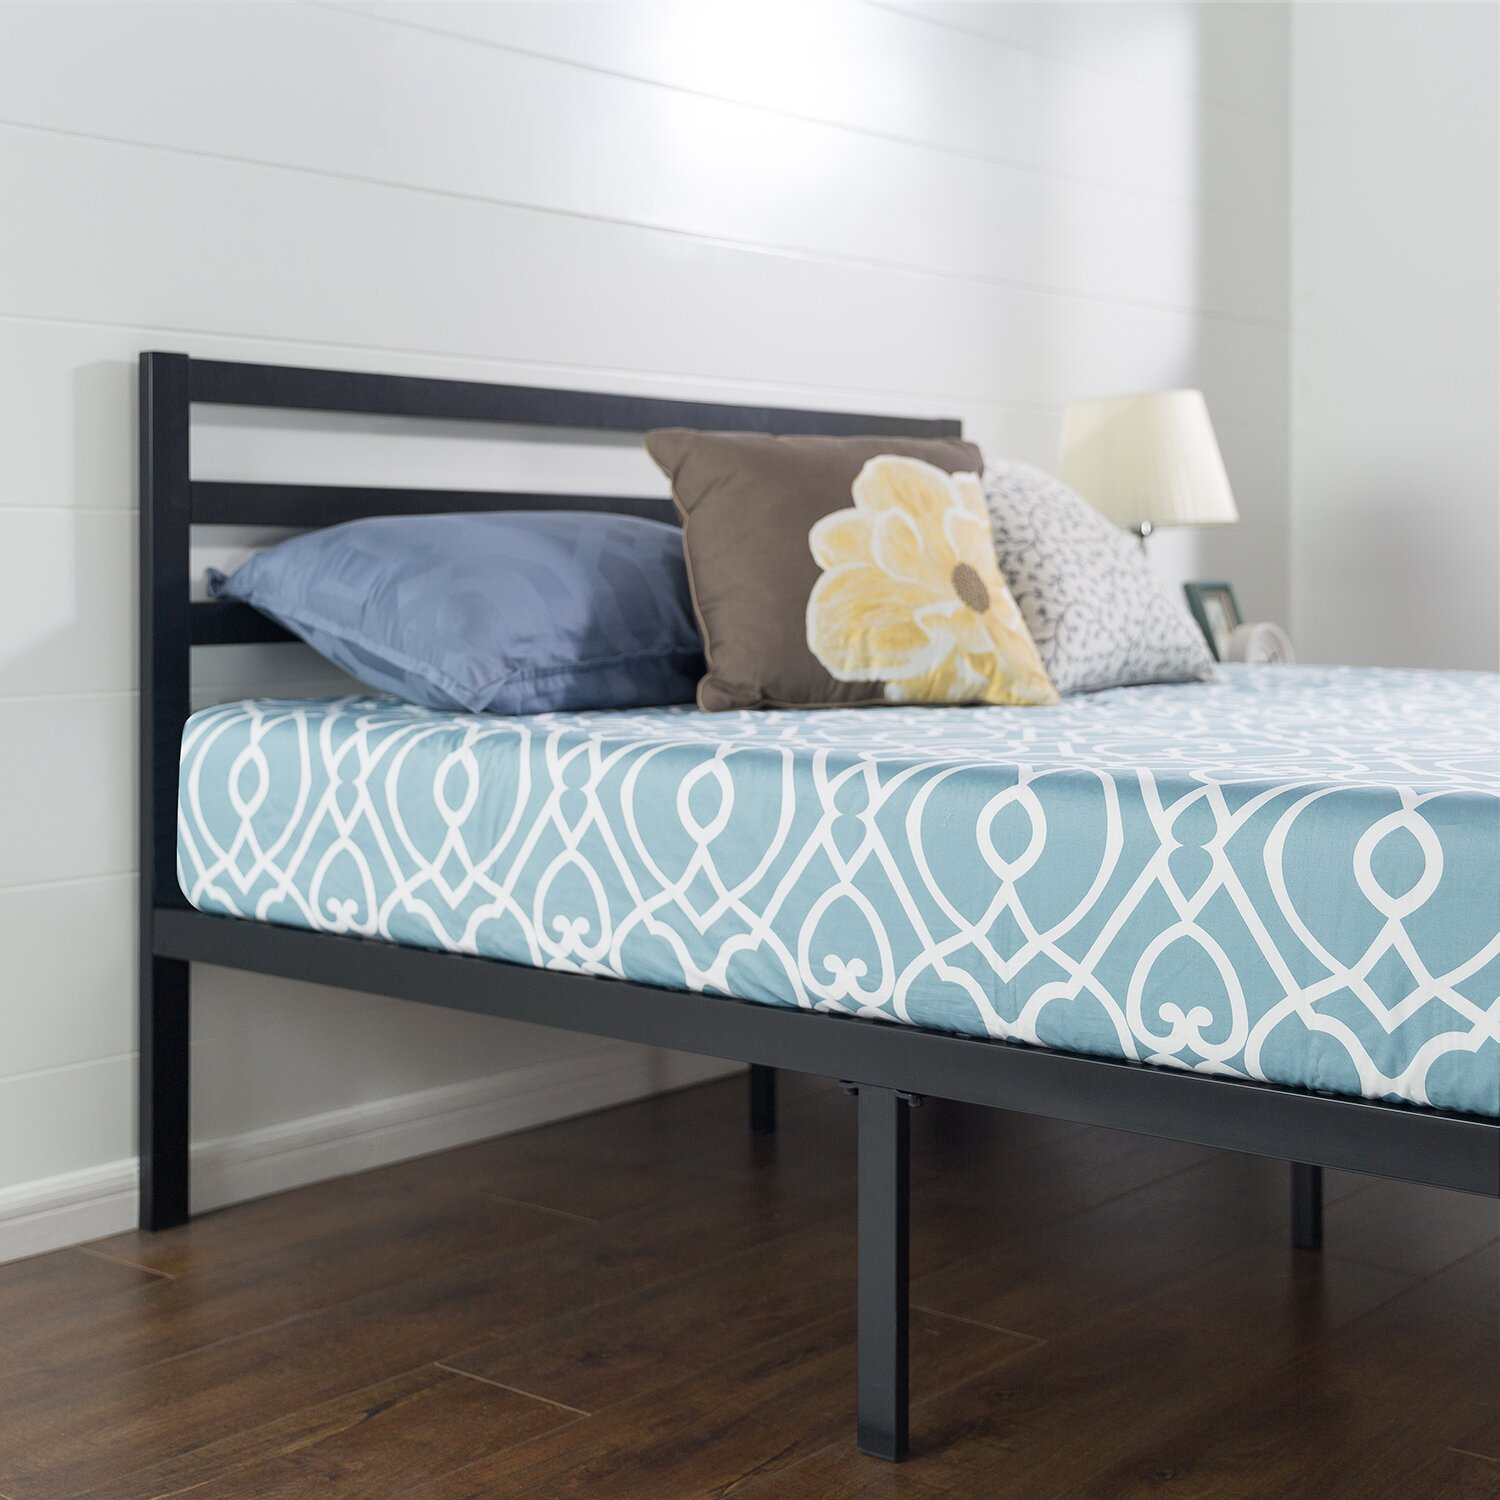 Anew Edit Quick Lock Metal Platform Bed Frame With